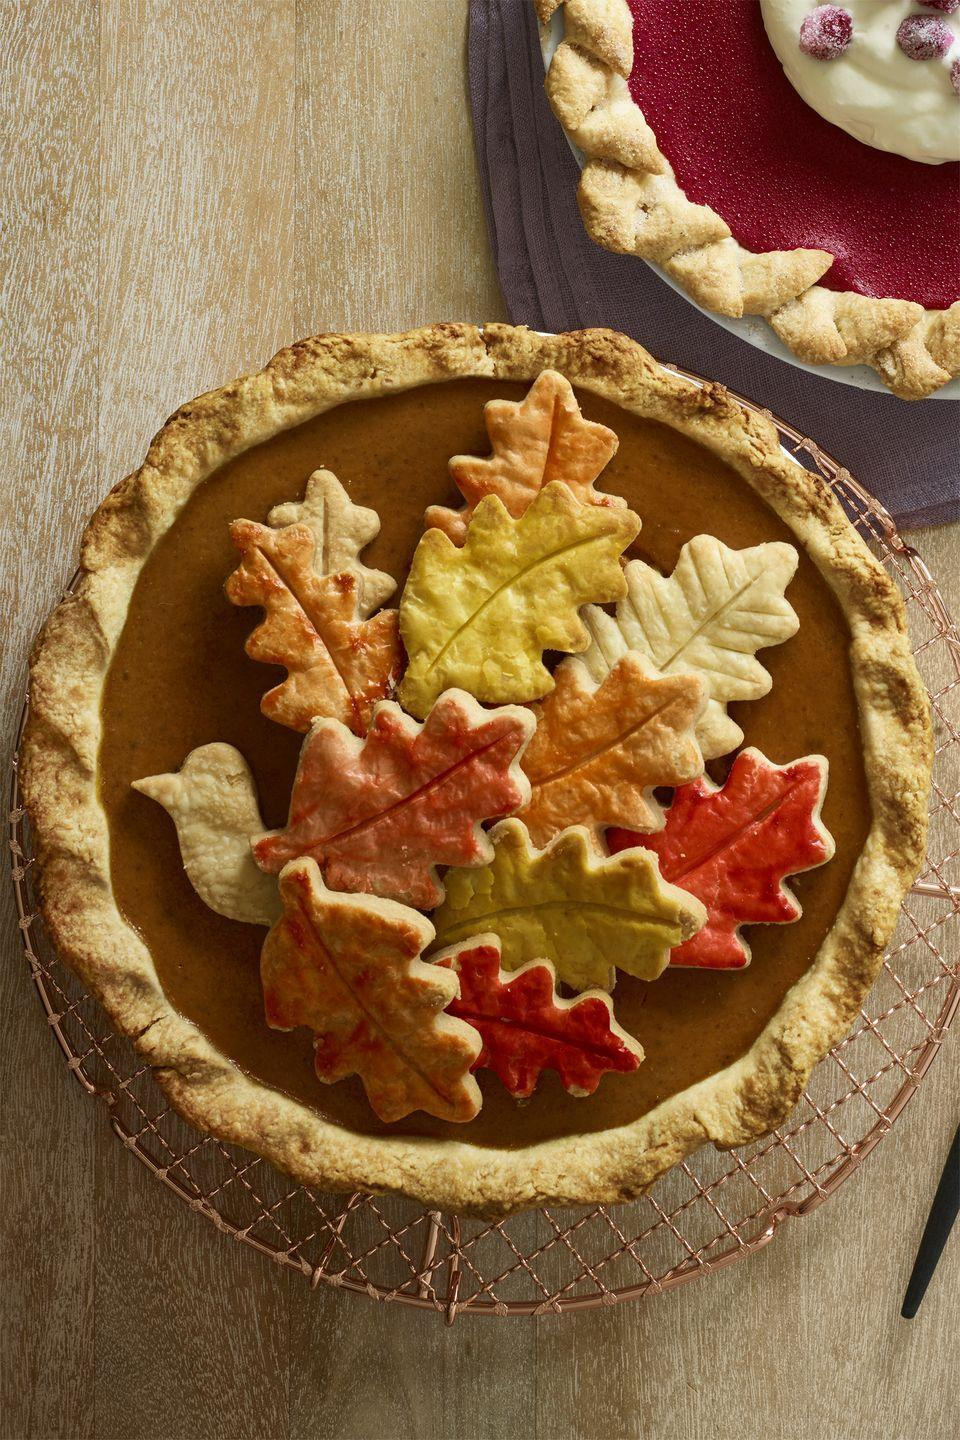 "<p>Decorate this spicy-sweet pie however you want, but we have a feeling this <a href=""https://www.womansday.com/food-recipes/food-drinks/g1986/leftover-turkey-recipes/"" rel=""nofollow noopener"" target=""_blank"" data-ylk=""slk:autumn-colored turkey"" class=""link rapid-noclick-resp"">autumn-colored turkey</a> will be a hit. </p><p><strong><em><a href=""https://www.womansday.com/food-recipes/food-drinks/recipes/a60507/chai-pumpkin-pie-recipe/"" rel=""nofollow noopener"" target=""_blank"" data-ylk=""slk:Get the Chai Pumpkin Pie recipe."" class=""link rapid-noclick-resp"">Get the Chai Pumpkin Pie recipe. </a></em></strong> </p><p><strong>What You'll Need: </strong><a href=""https://www.amazon.com/Thanksgiving-Turkey-Cookie-Cutter-Plated/dp/B074ZRBN86/ref=sr_1_1_sspa?"" rel=""nofollow noopener"" target=""_blank"" data-ylk=""slk:Turkey Cookie Cutter"" class=""link rapid-noclick-resp"">Turkey Cookie Cutter</a> ($6, Amazon), <a href=""https://www.amazon.com/Fall-Leaves-Cookie-Cutter-Set/dp/B074V1JVP7/ref=sr_1_4?"" rel=""nofollow noopener"" target=""_blank"" data-ylk=""slk:Leaf Cookie Cutter Set"" class=""link rapid-noclick-resp"">Leaf Cookie Cutter Set</a> ($10, Amazon)</p>"